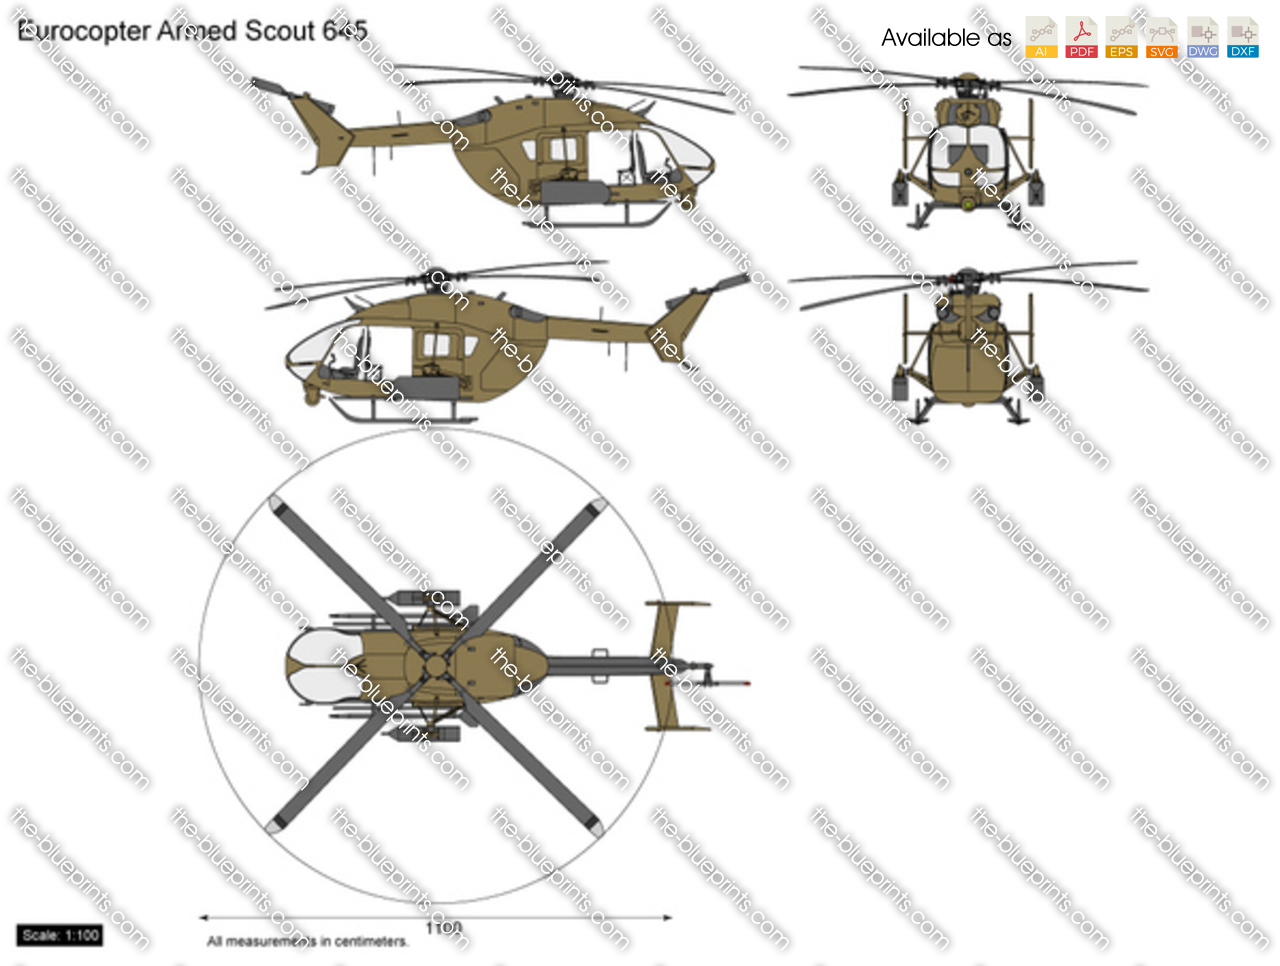 Eurocopter Armed Scout 645